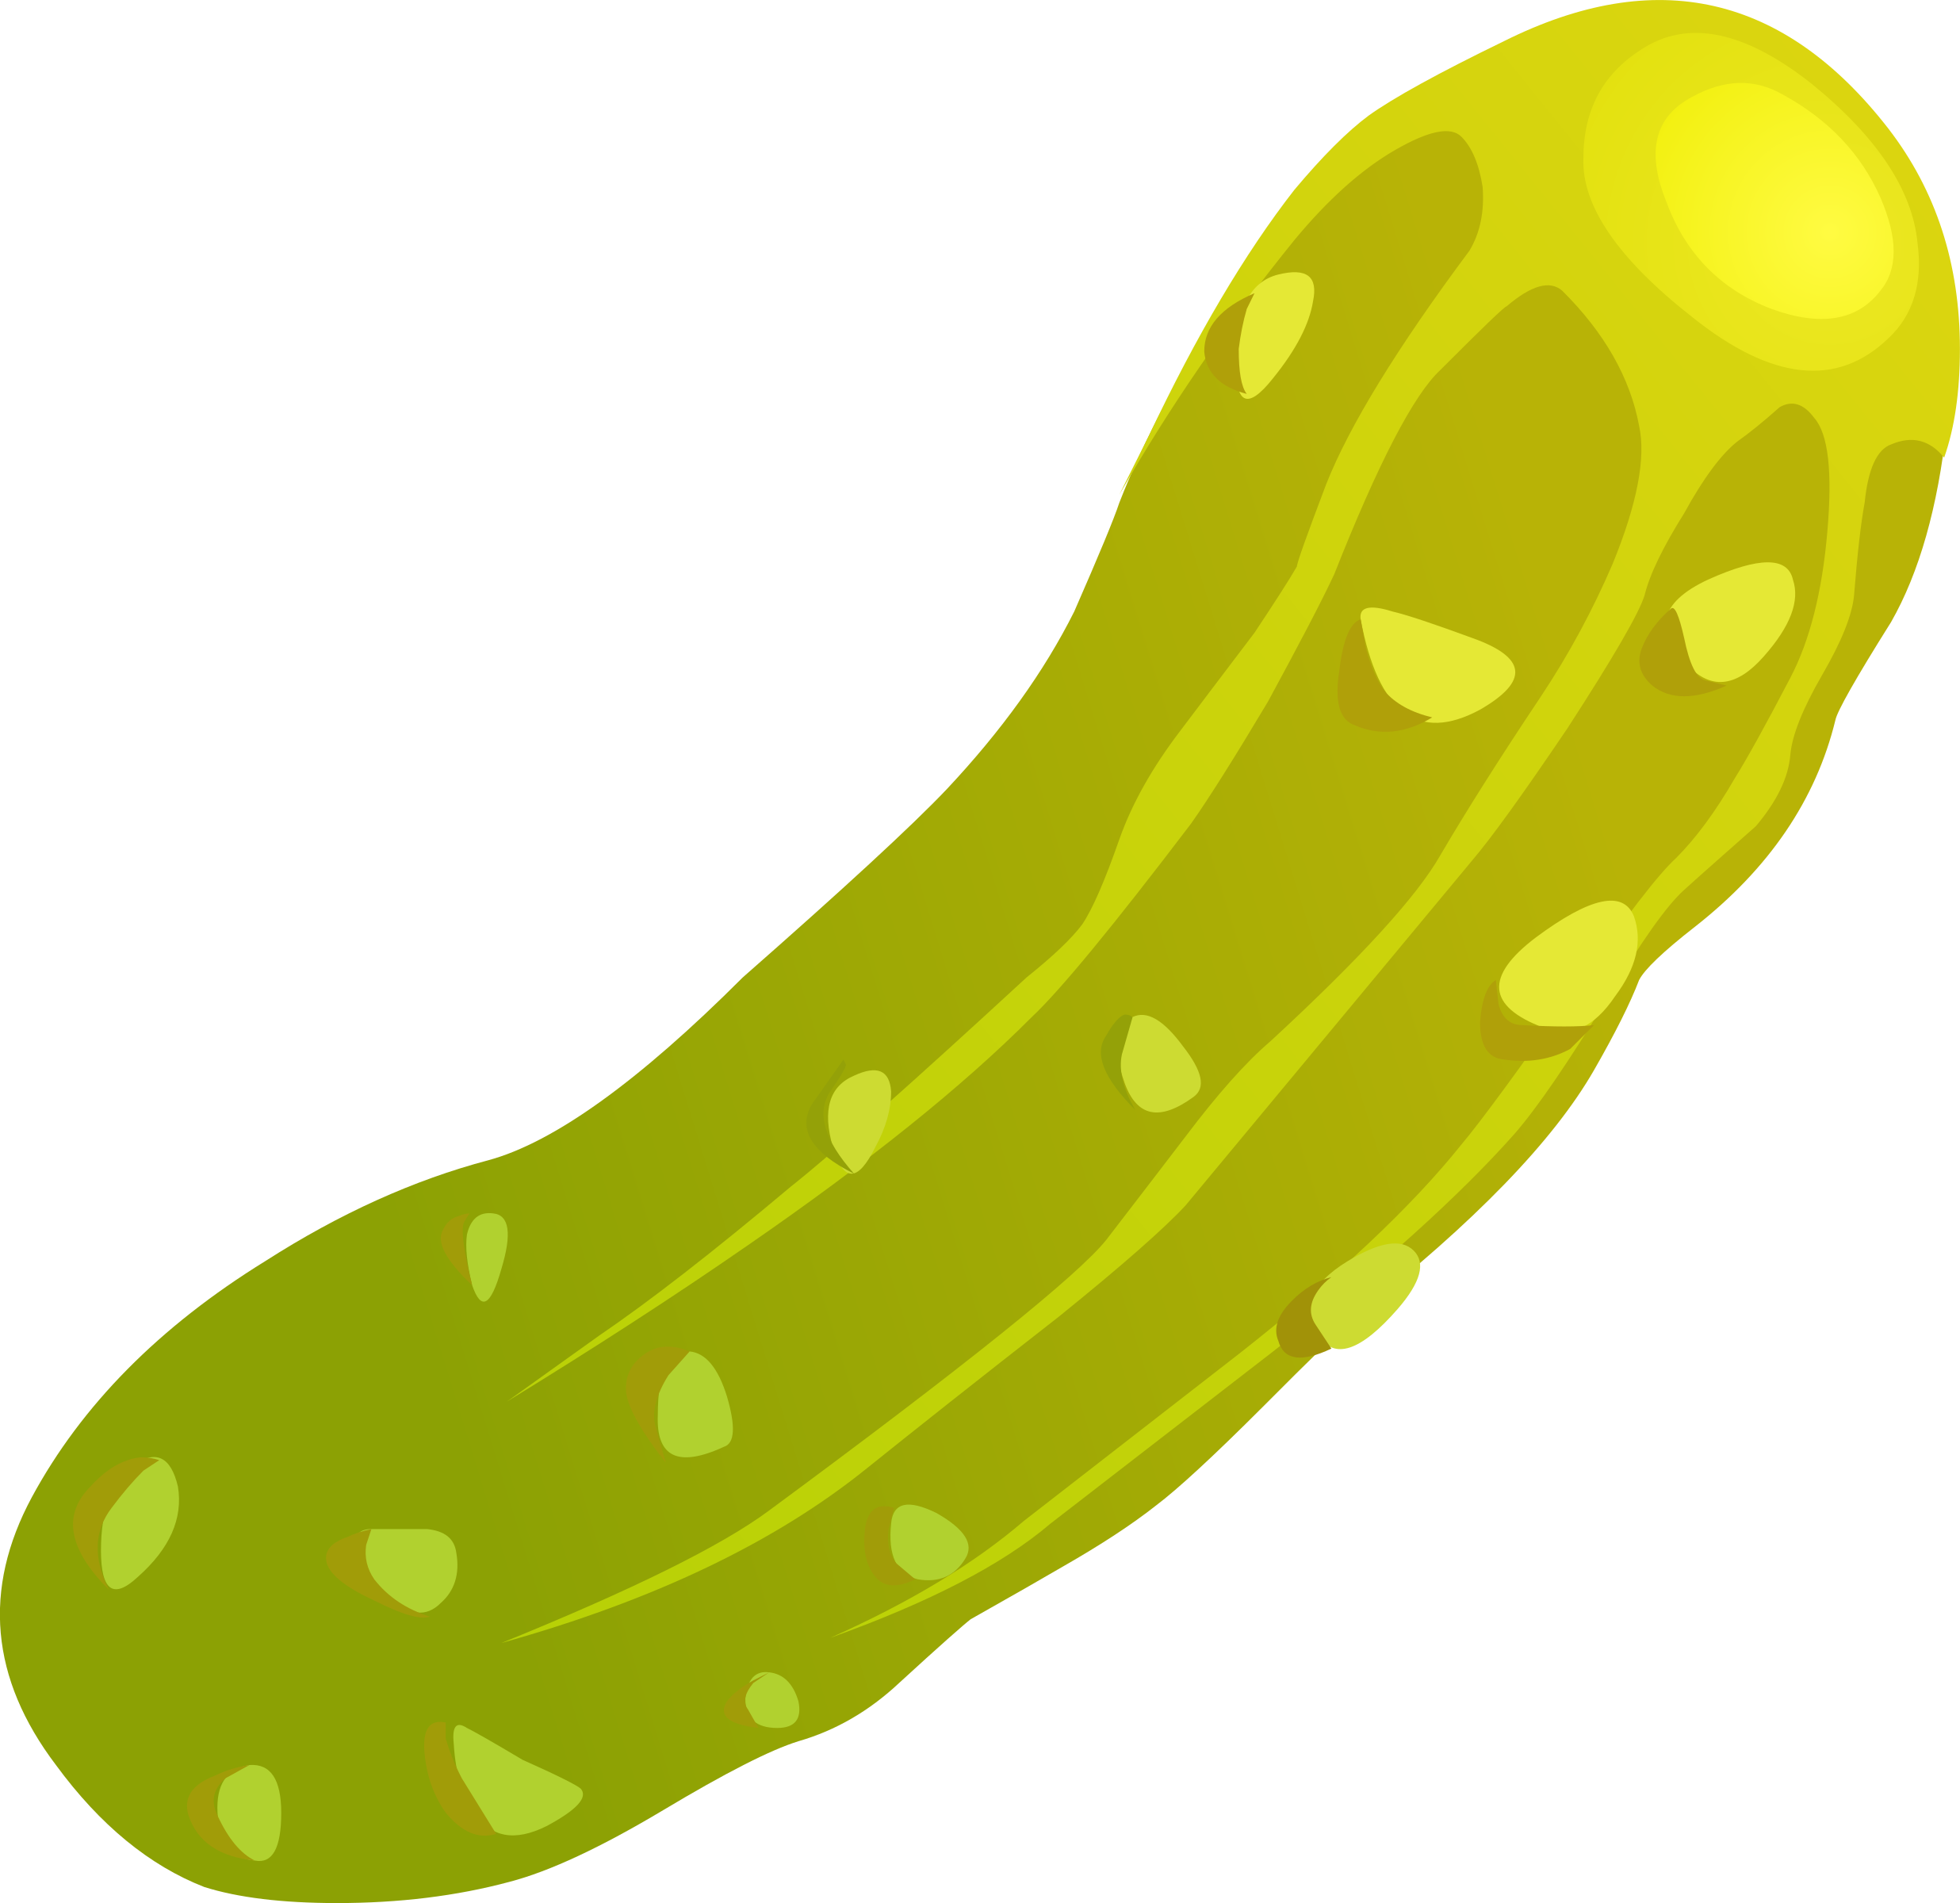 Pickles clipart fried pickles. Free cliparts download clip